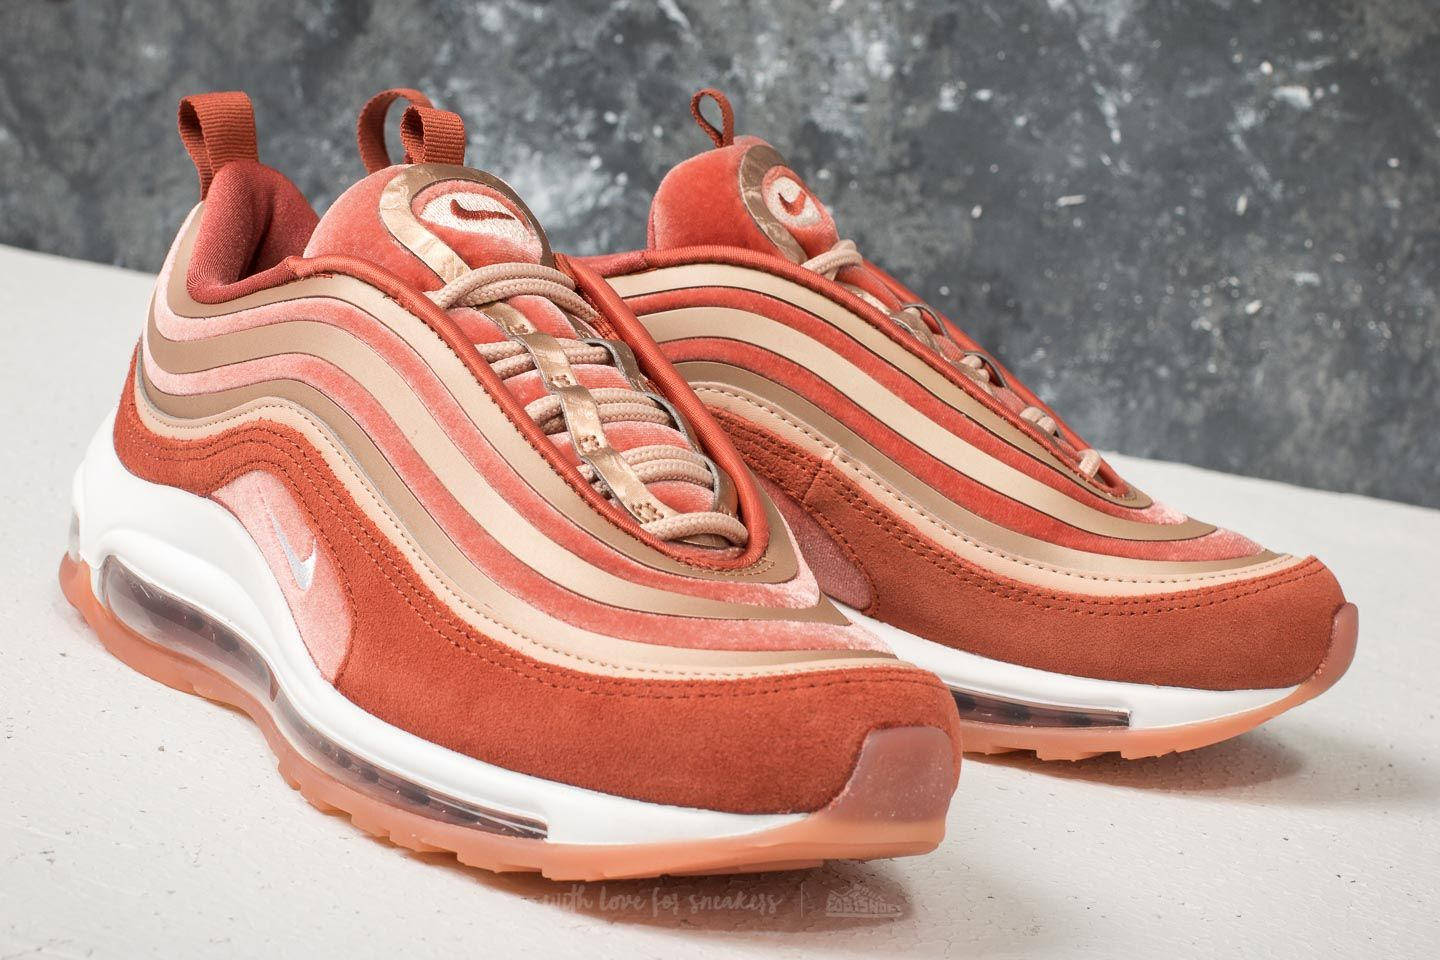 competitive price 7ca48 6c759 Nike W Air Max 97 UL '17 LX Dusty Peach/ Summit White | Footshop